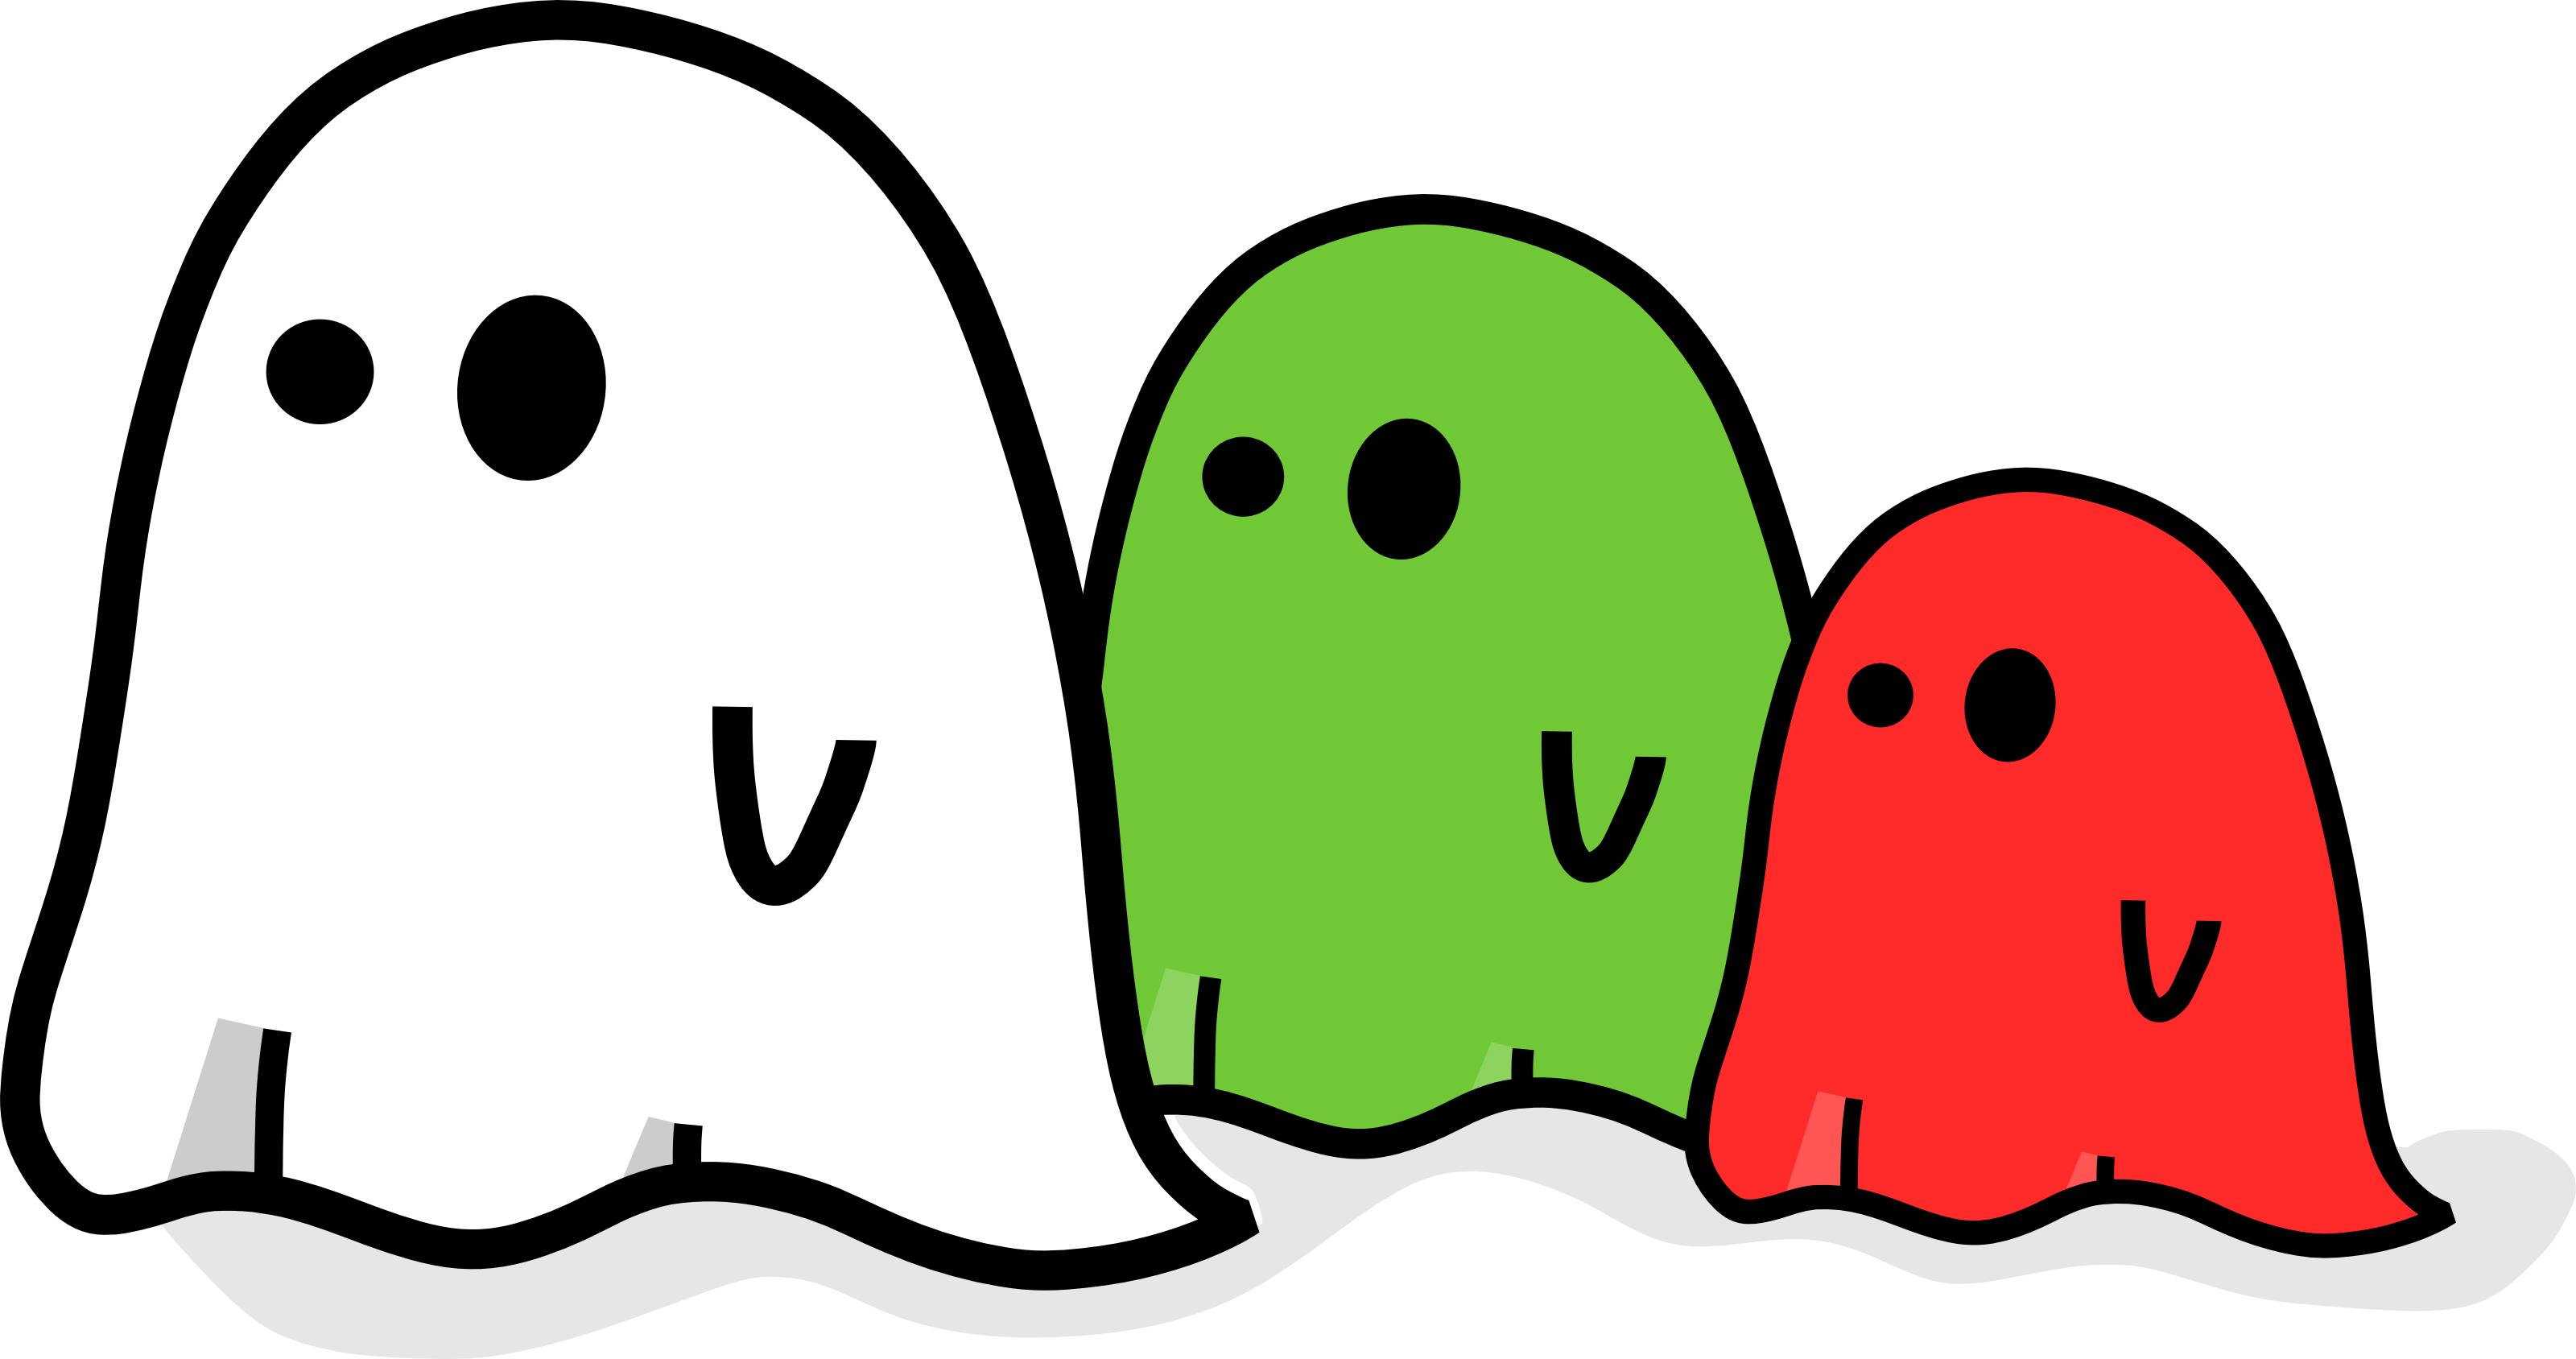 3200x1688 Best Halloween Ghost Clip Art Vector Design » Free Vector Art